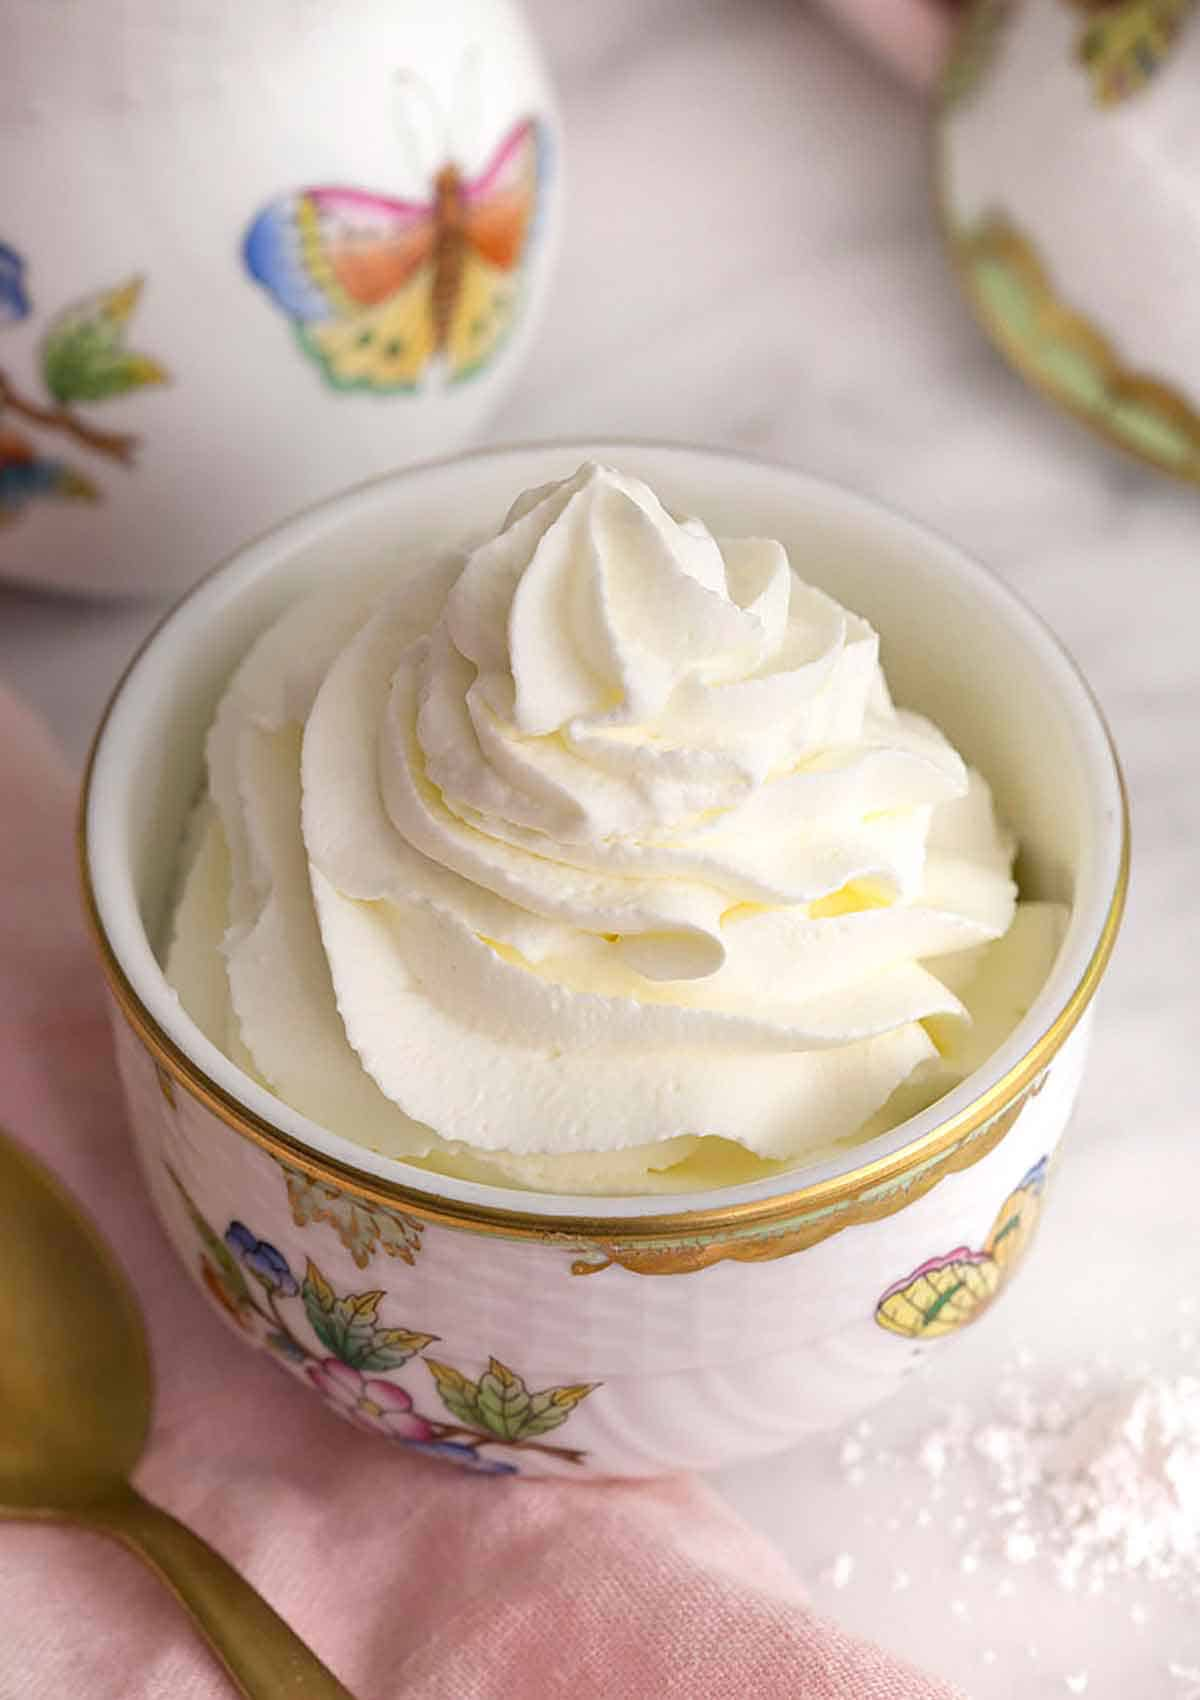 A bowl with flowers and butterflies containing whipped cream.